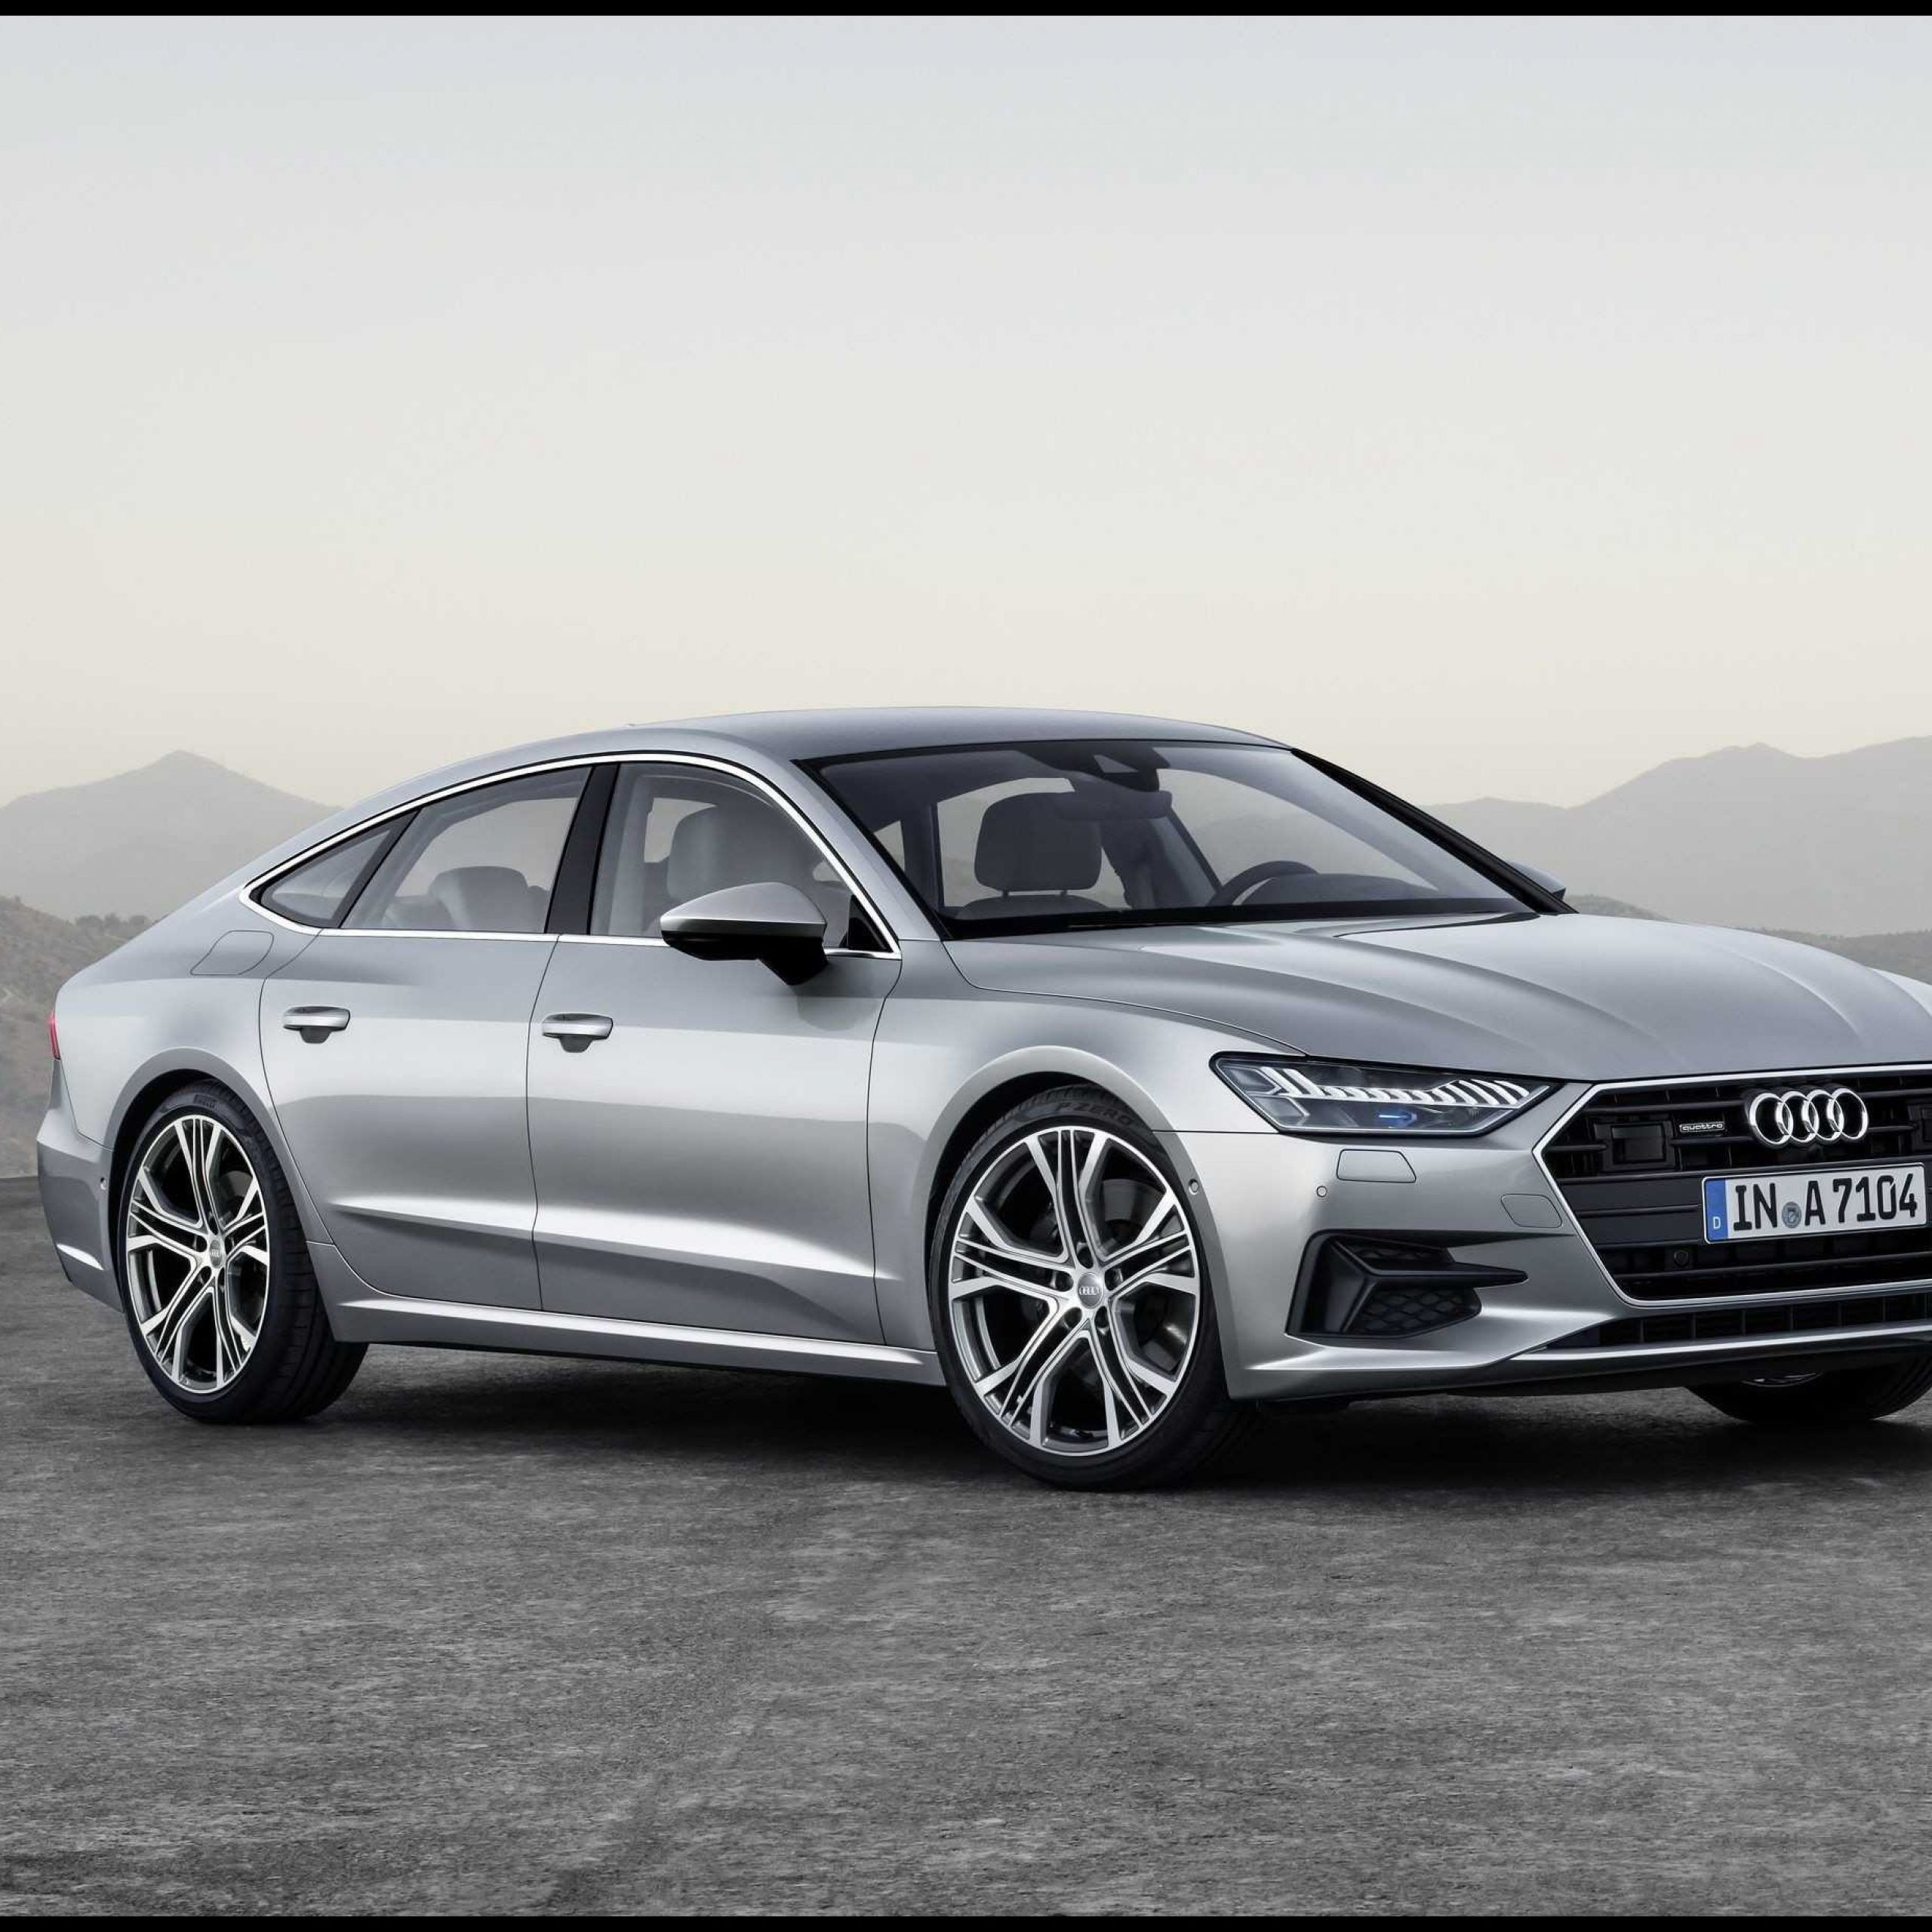 Audi 2016 Lovely Audi A7 Convertible – the Best Choice Car